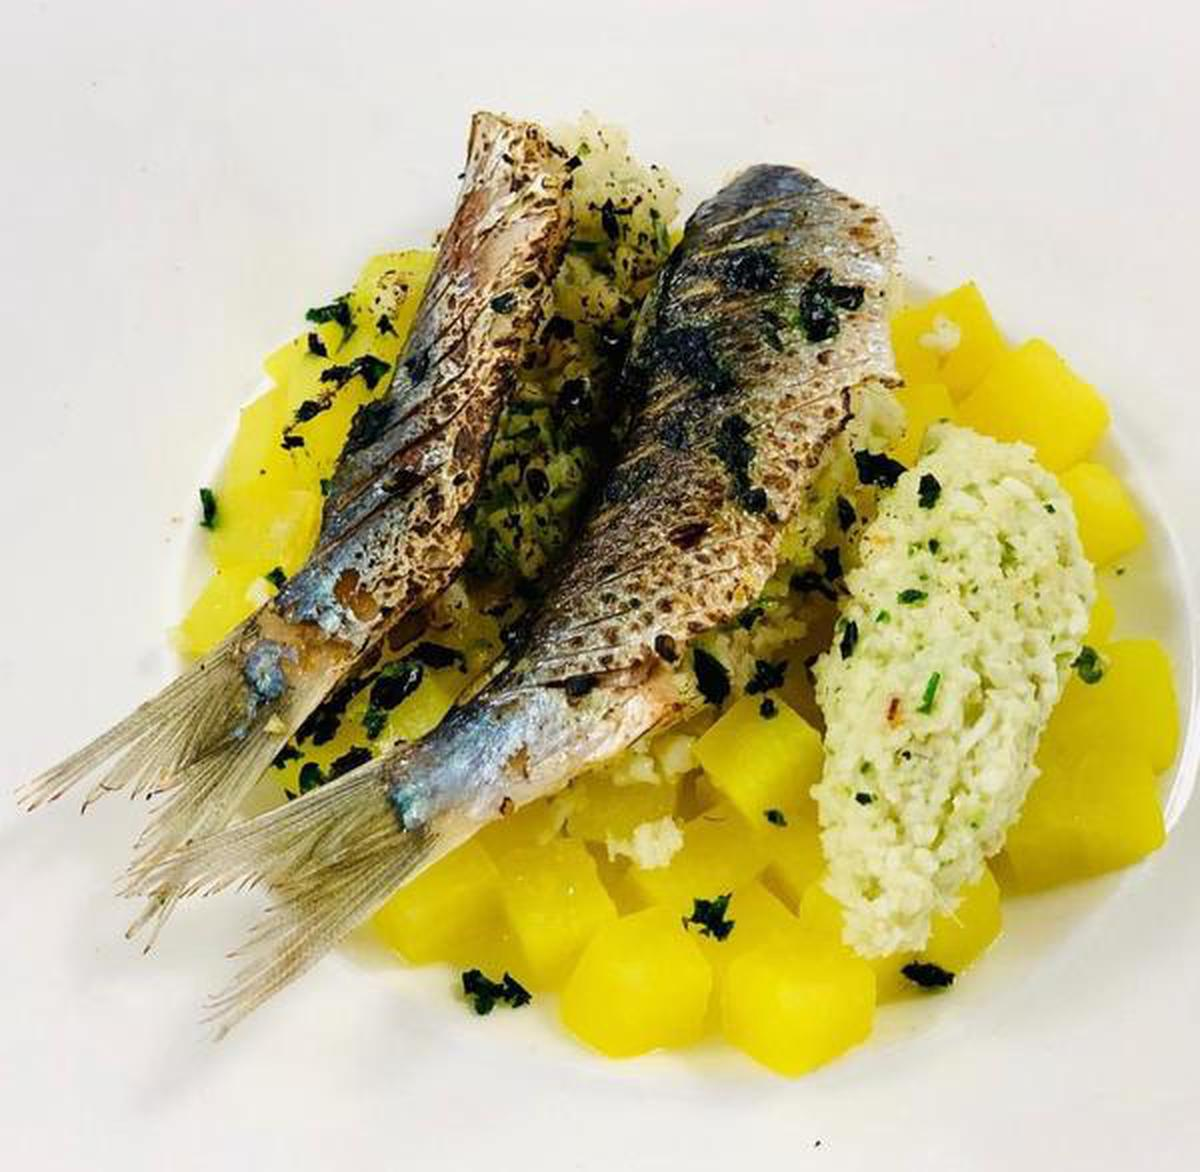 Coconut-stuffed and steamed sardine, colocasia brunoise cooked in turmeric brine liquid and a chutney made of mango, coconut and curry leaves